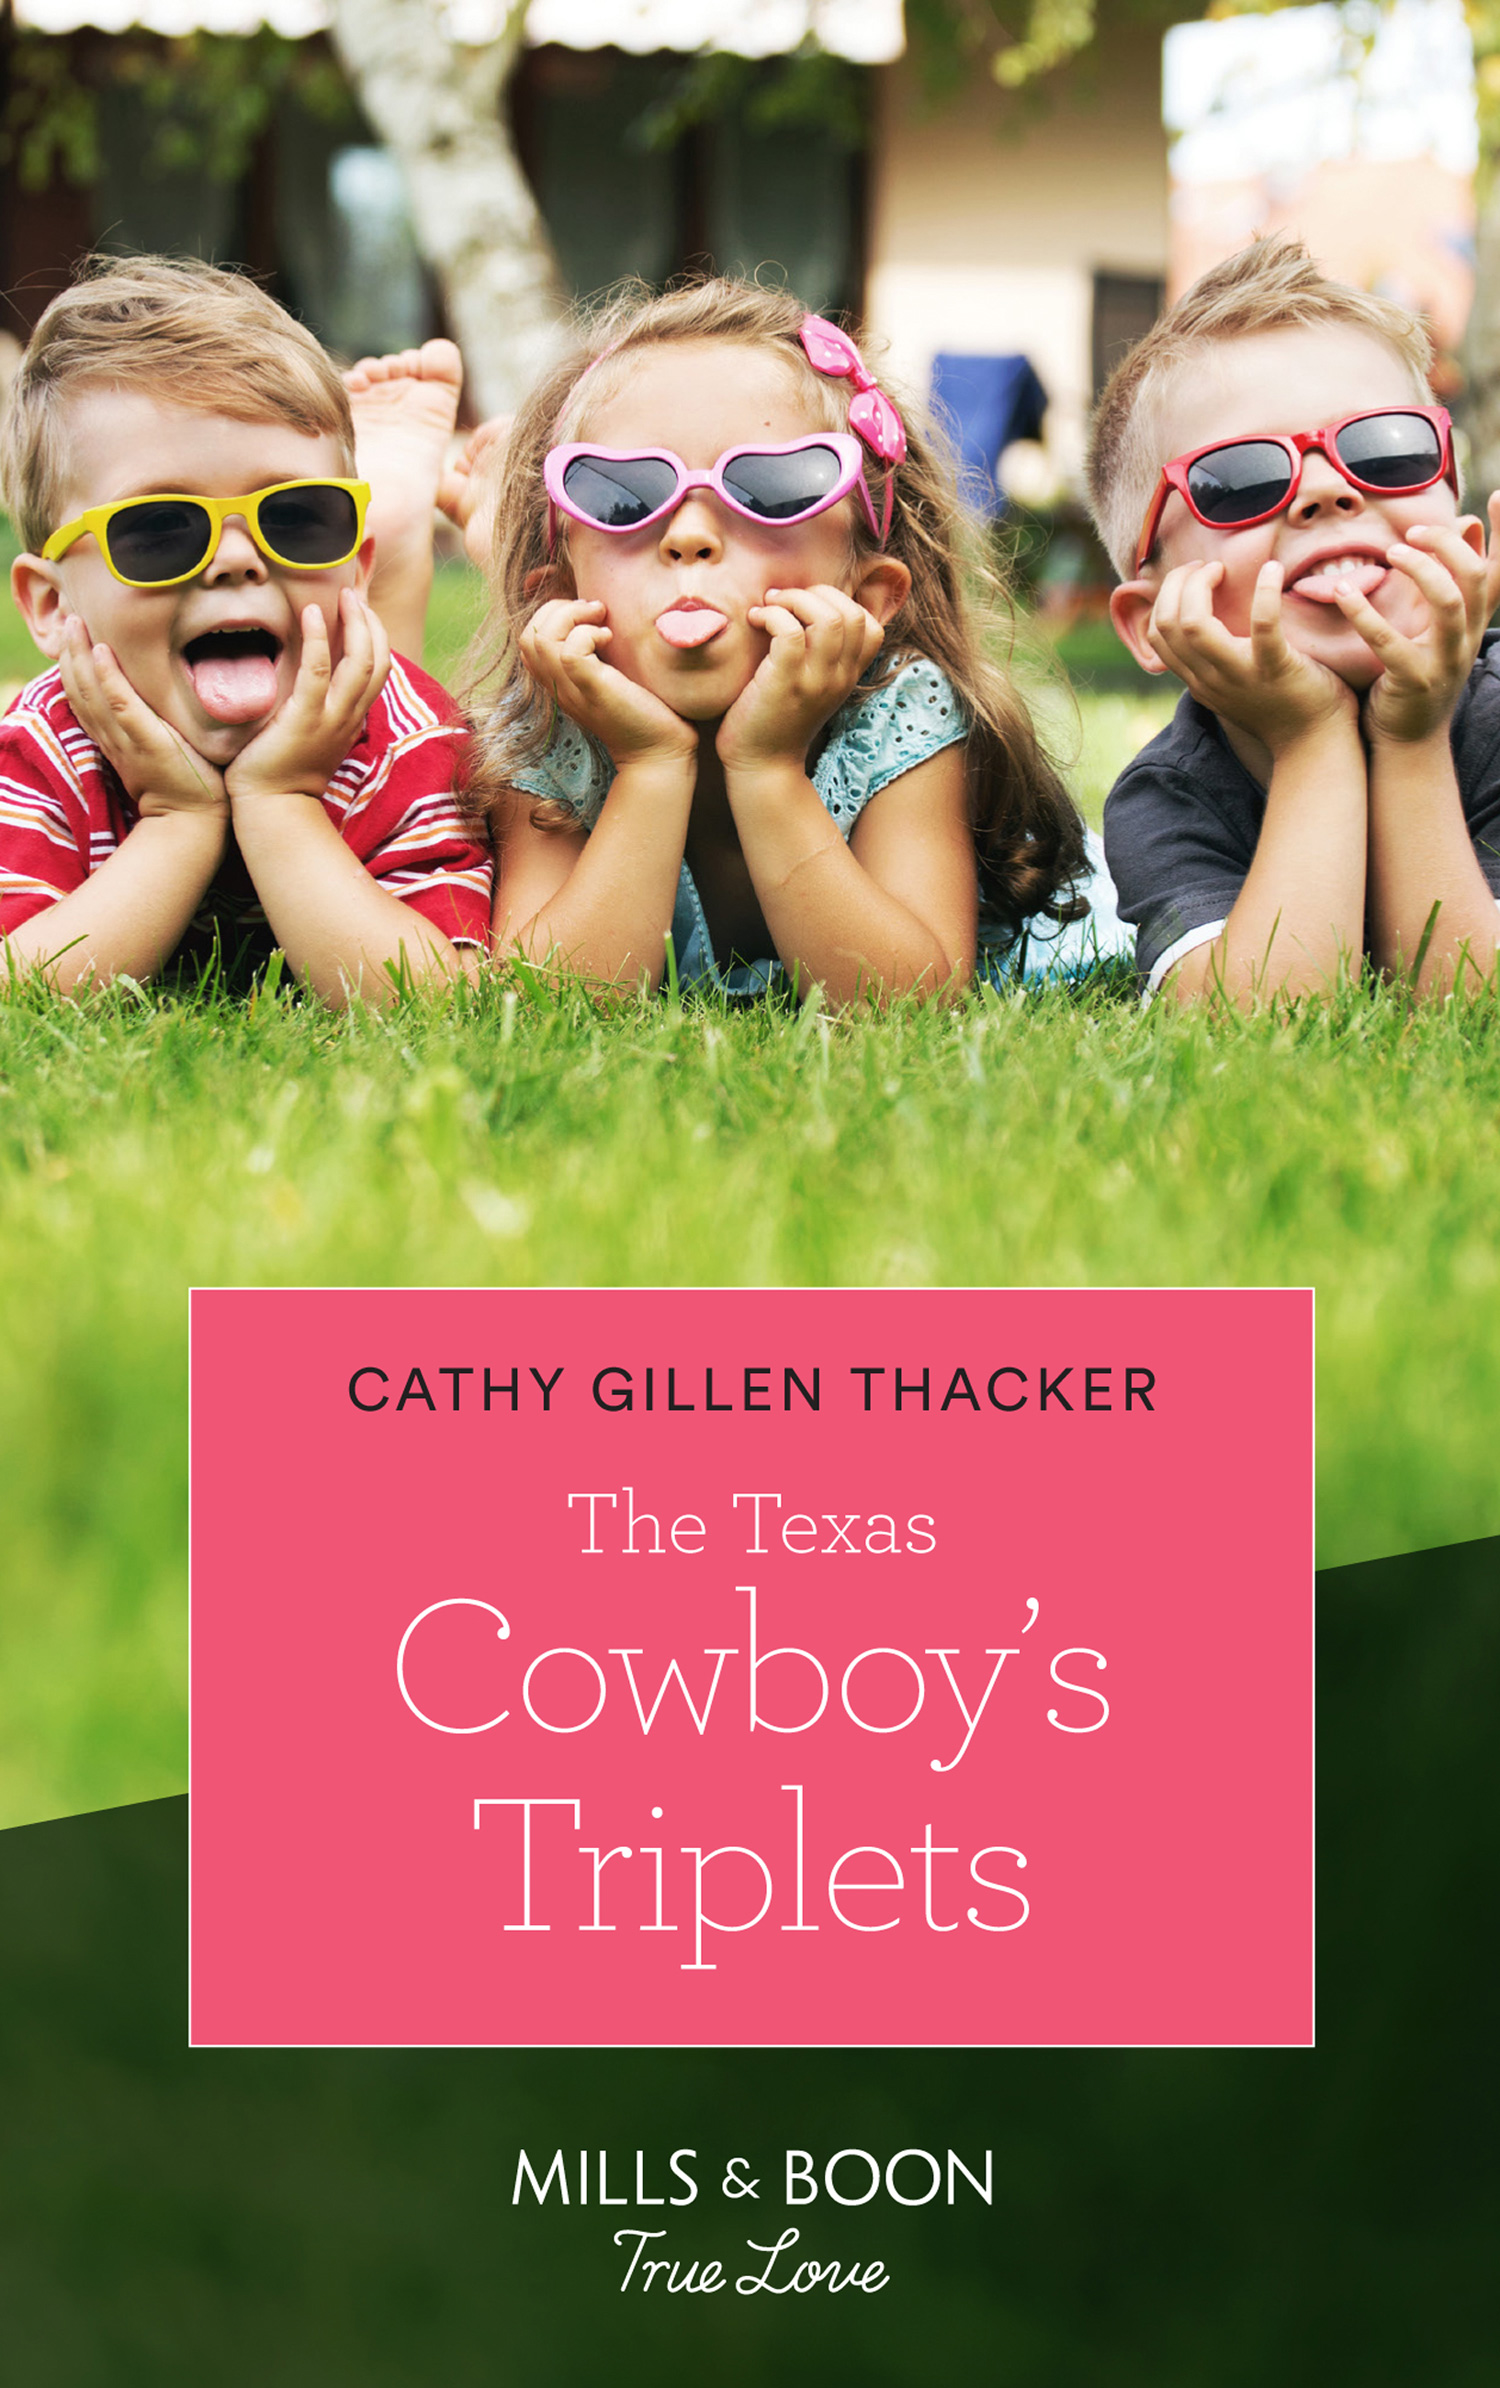 The Texas Cowboy's Triplets